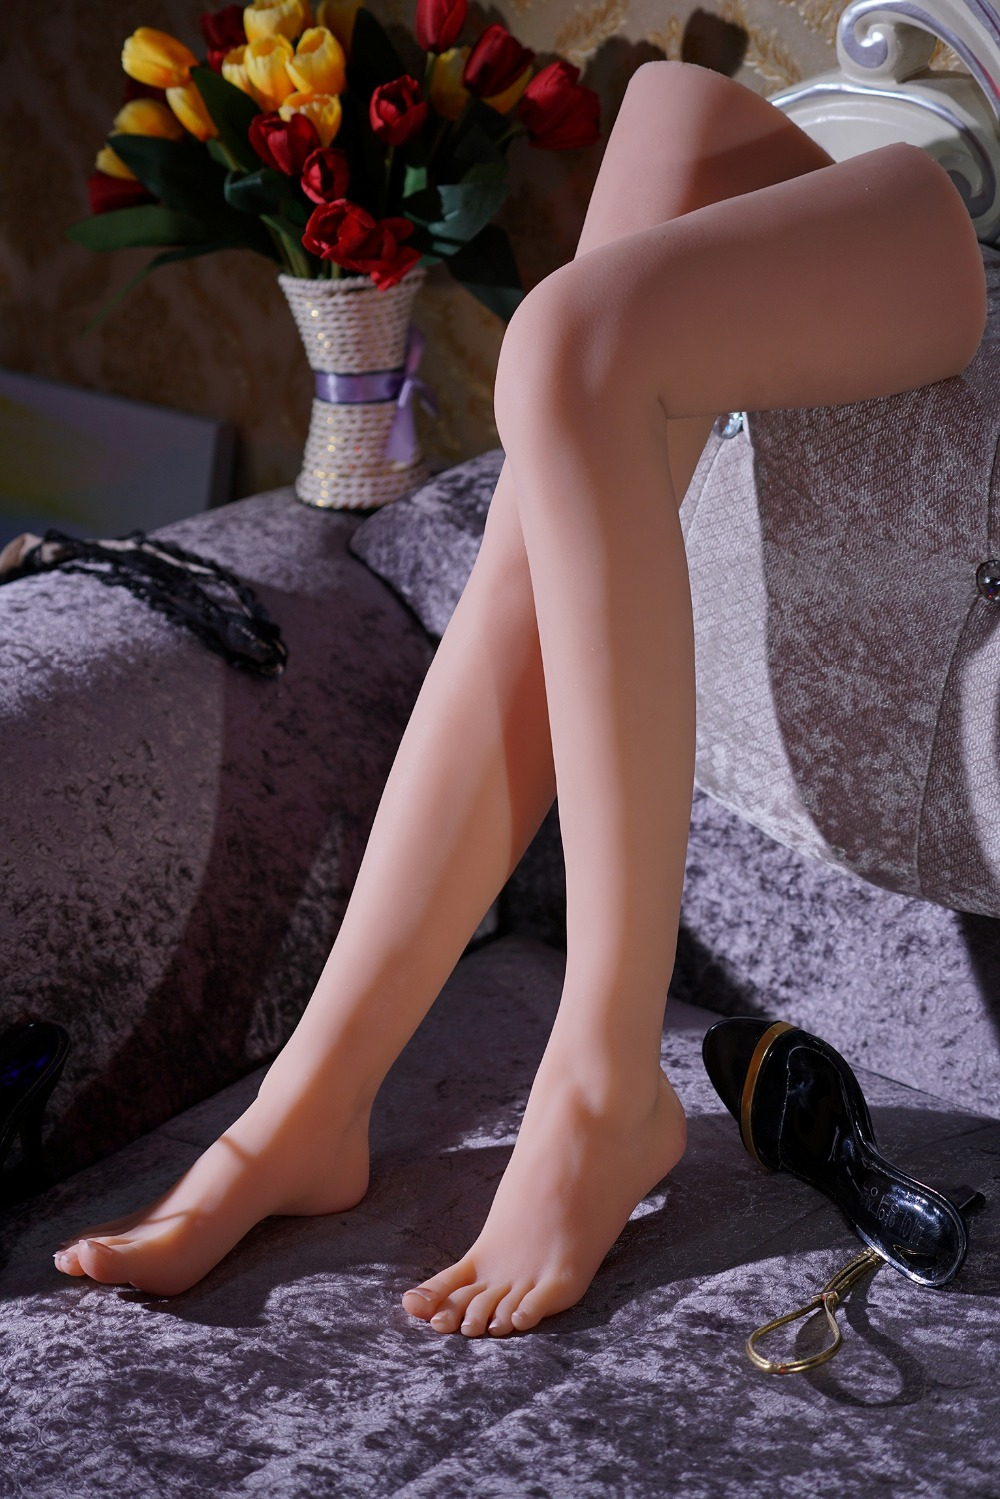 newest girls ballerina dancer gymnast foot feet pointed toes fetish toys model top quality new sex product soft feet fetish toys for man lifelike female feet mannequin fake feet model for sock show ft 3600 1